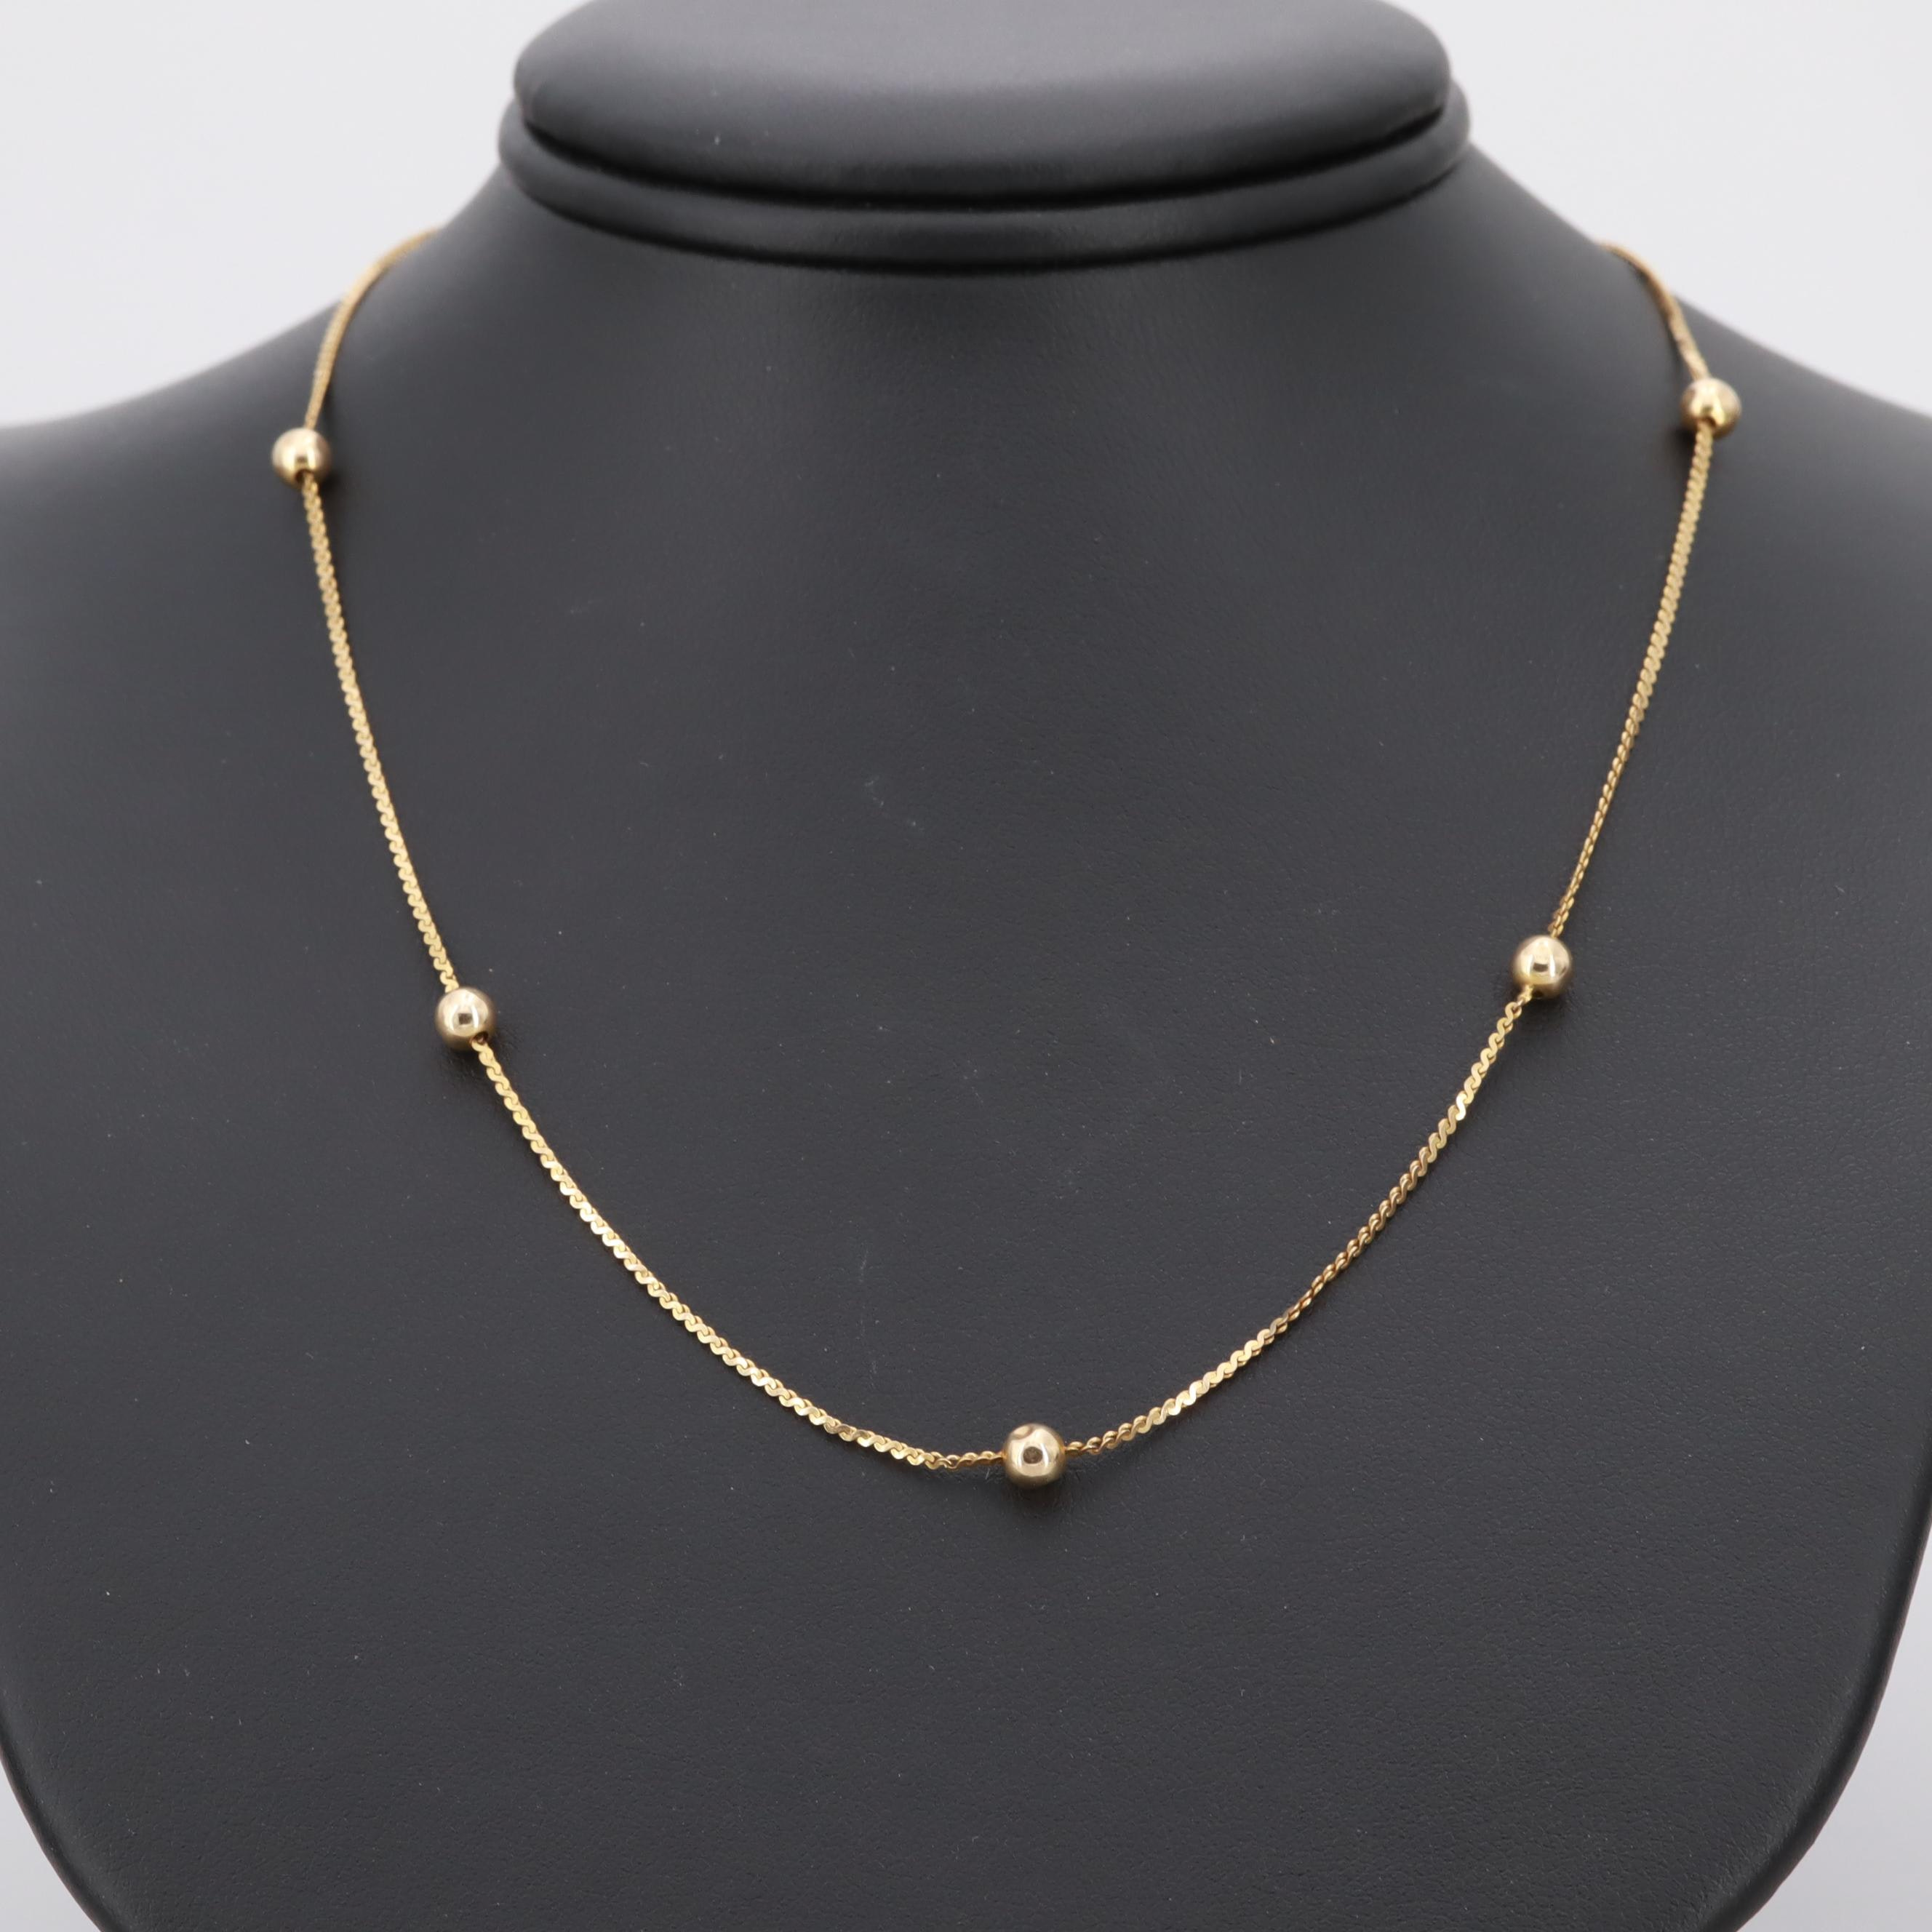 14K Yellow Gold Serpentine and Spherical Station Chain Necklace